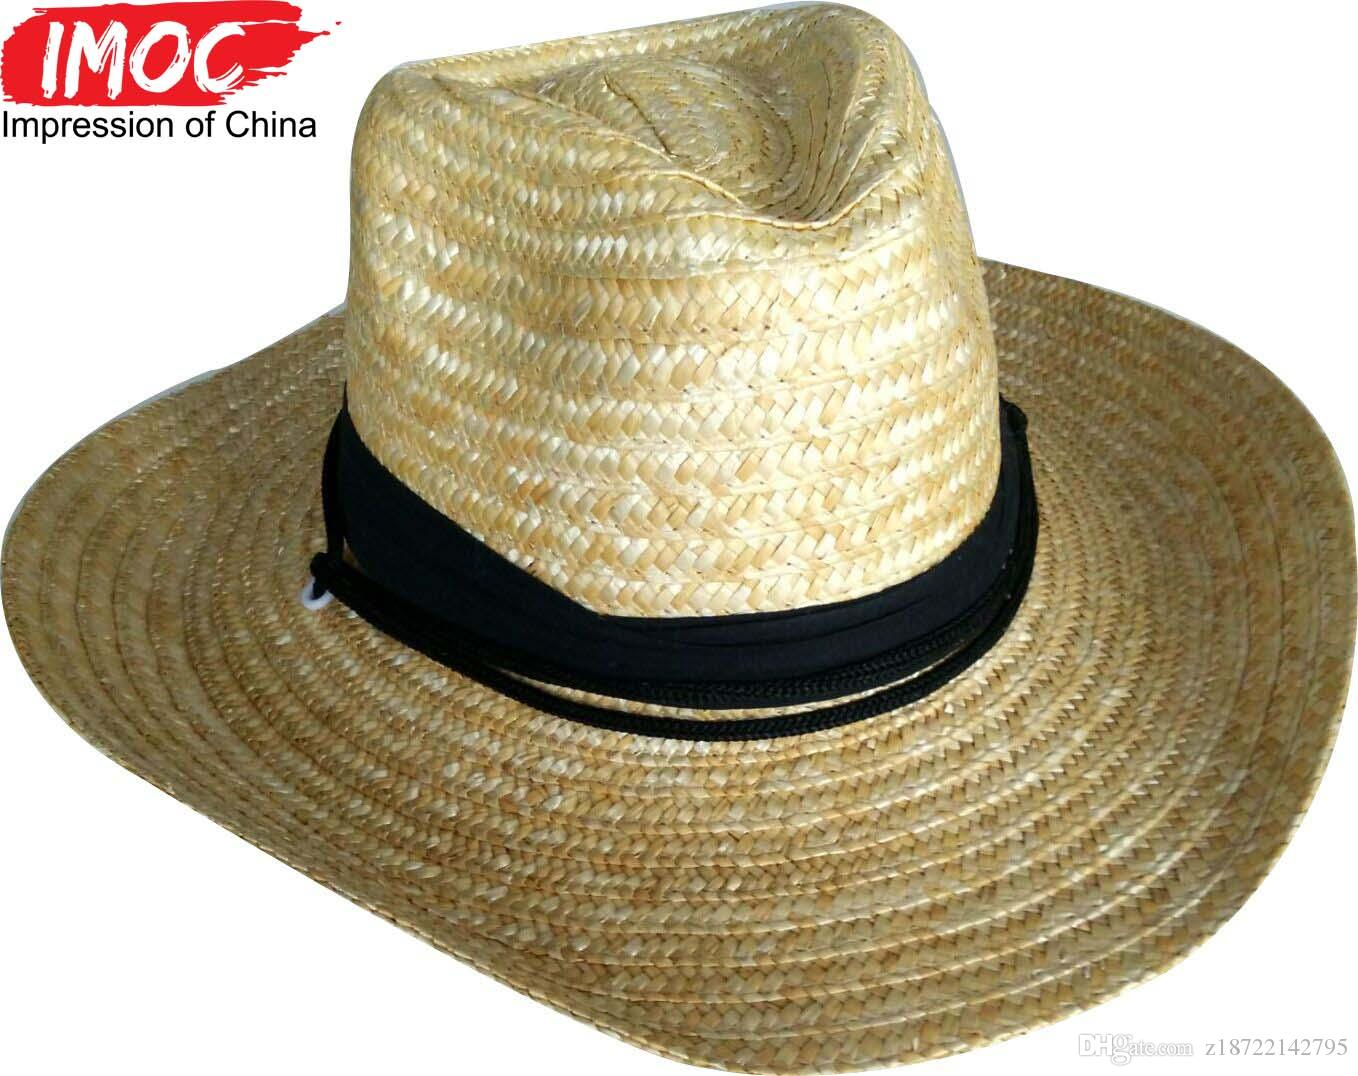 Handmade Cowboy Hat Fashion Chapeu Hats Summer Wide Brim Sun Straw Hat Mens  And Womens Hats Double Purpose Folding Faddish Women Big Straw Hats And  Caps ... 7944fea0409